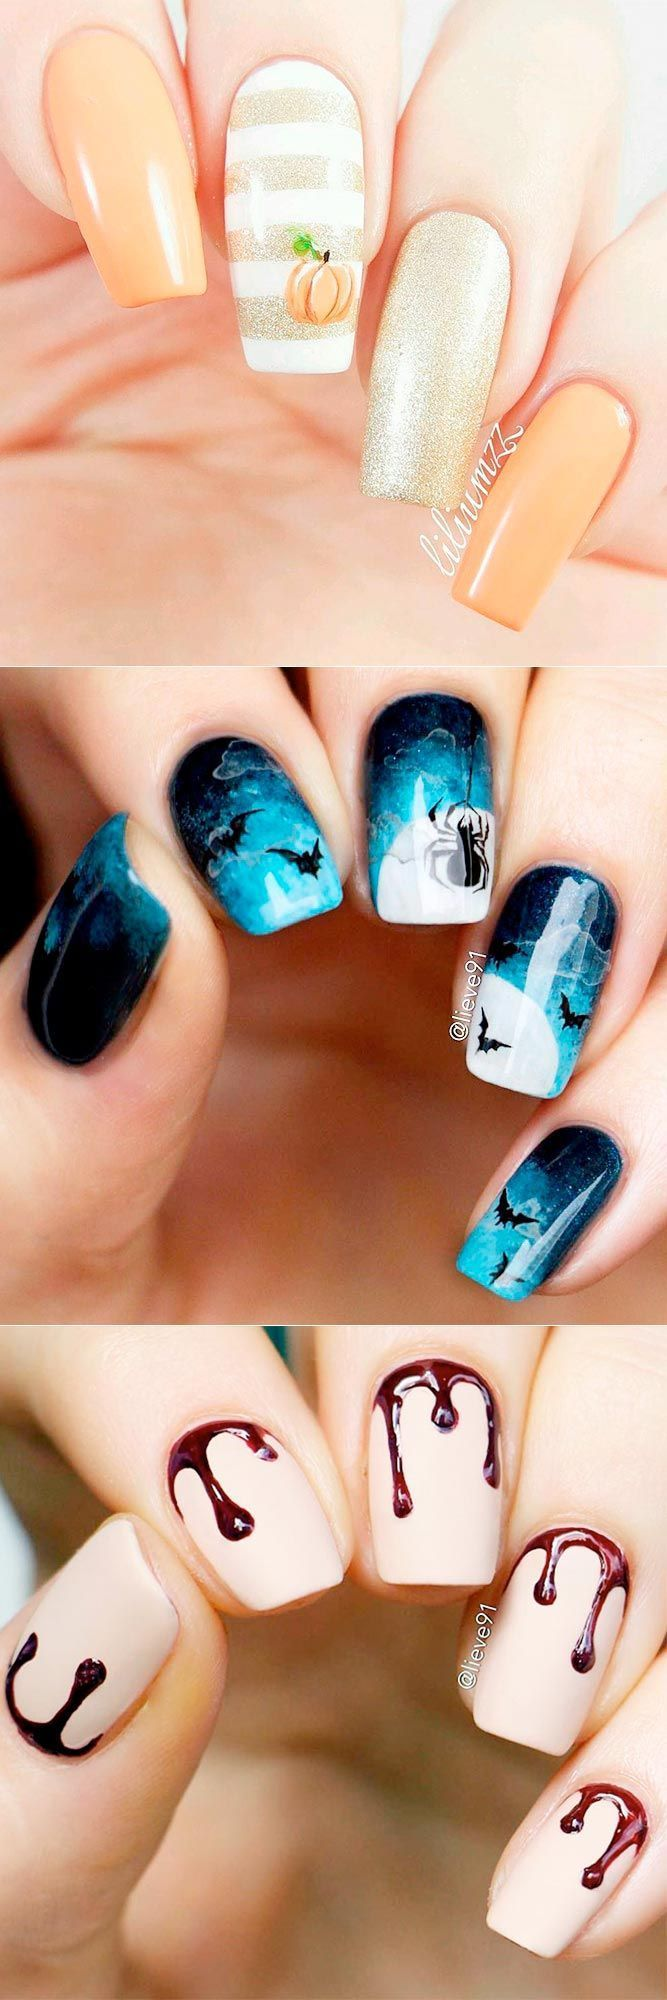 Halloween nail designs are the perfect way to express